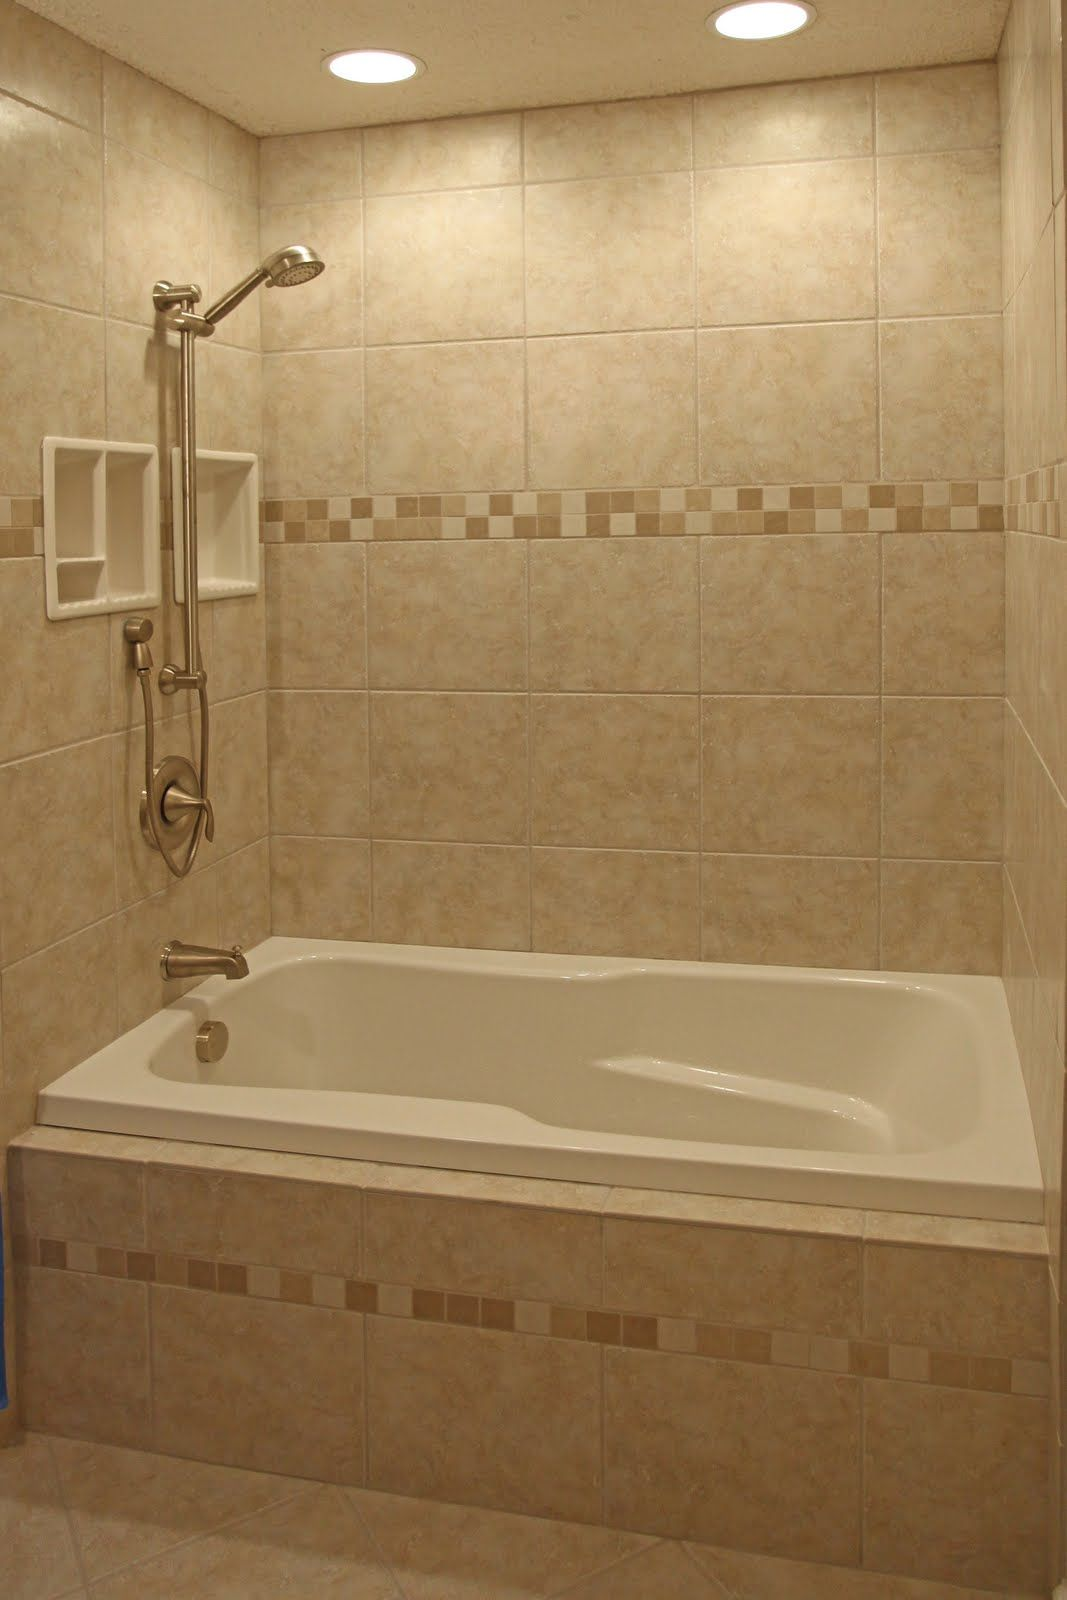 Bathroom Tiles Pictures Shower And Bath Remodel Bathroom Shower Design Ideas